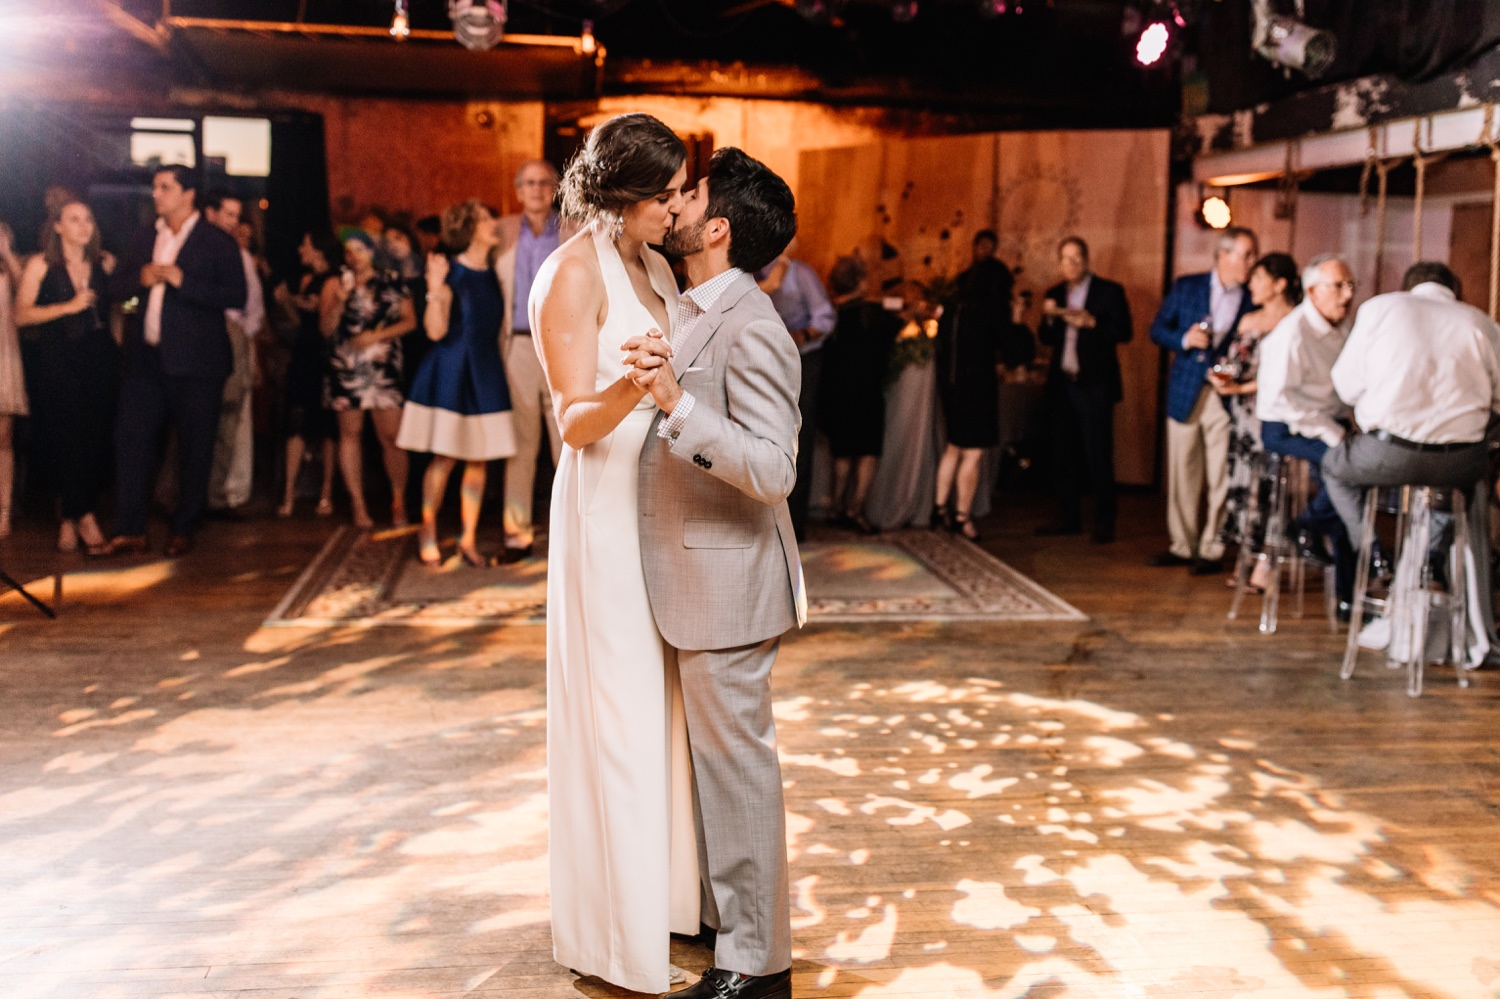 Warehouse on Watts Philadelphia Wedding - Best Industrial Non-Traditional Venues